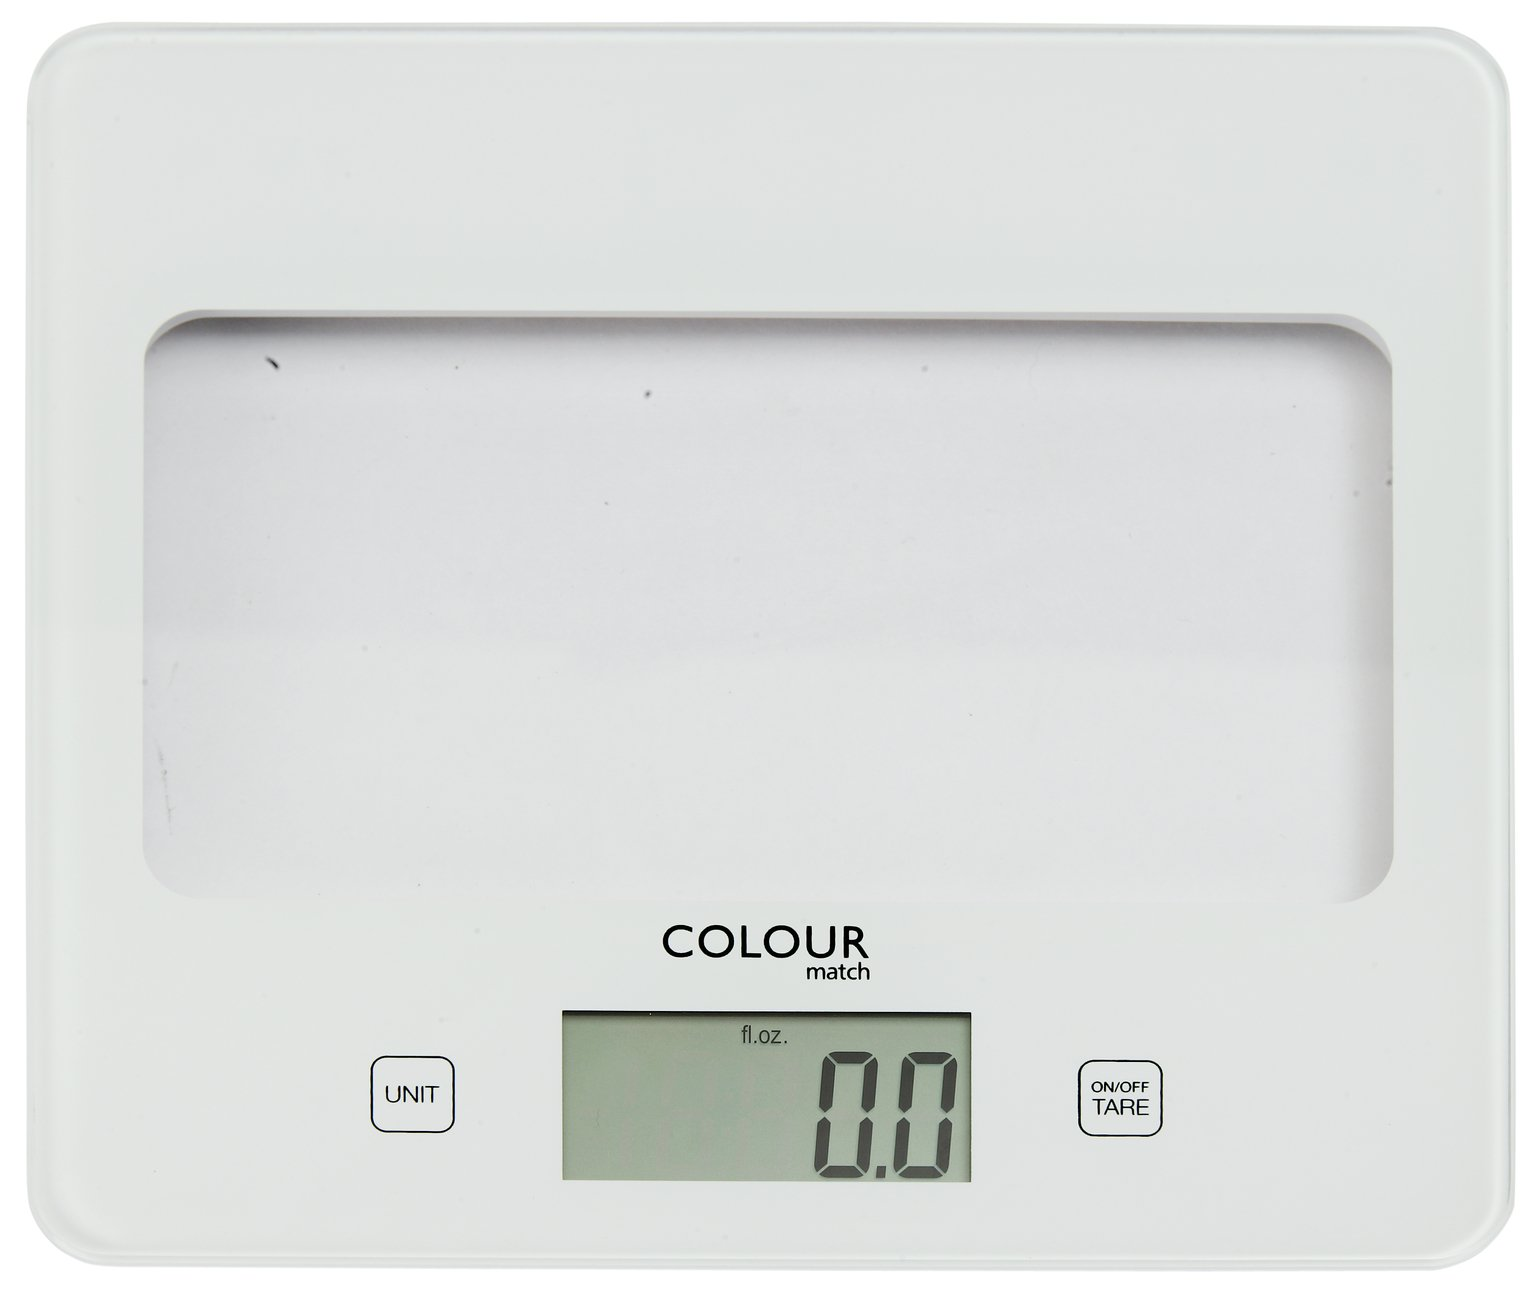 Argos Home Digital Kitchen Scale - Super White